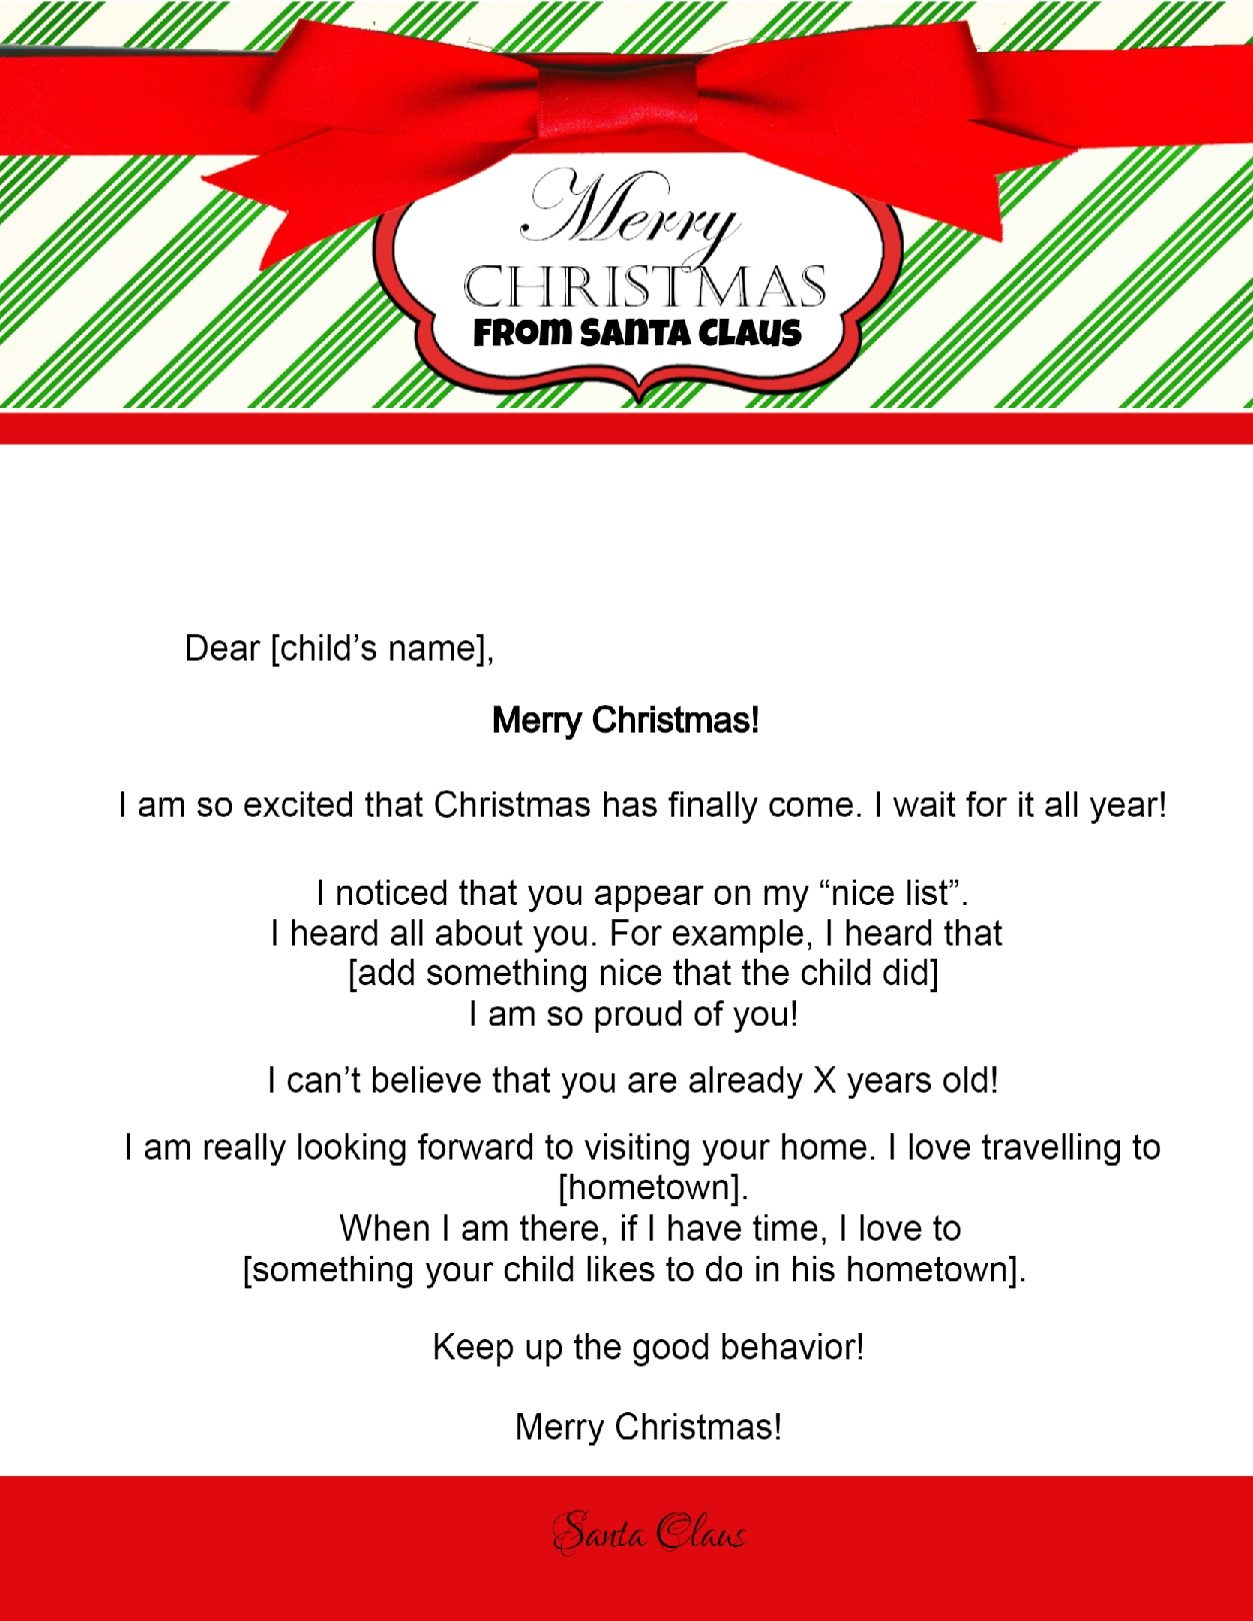 letter-from-santa-10 Letter To Kids From Santa Template on santa elf cut out template, letter room mom ideas, return santa letter template, letter santa watching you pintrest, coloring santa letter template, dear santa letter template, printable alphabet letter q template, santa response letter template, sign up sheet order form template, santa letterhead template, letter from mrs claus, large printable alphabet letter r template, letter to santa, santa reply letter template, santa head template, santa signature template, letter santa is not real, letter santa claus signature, write santa a letter template, santa claus template,